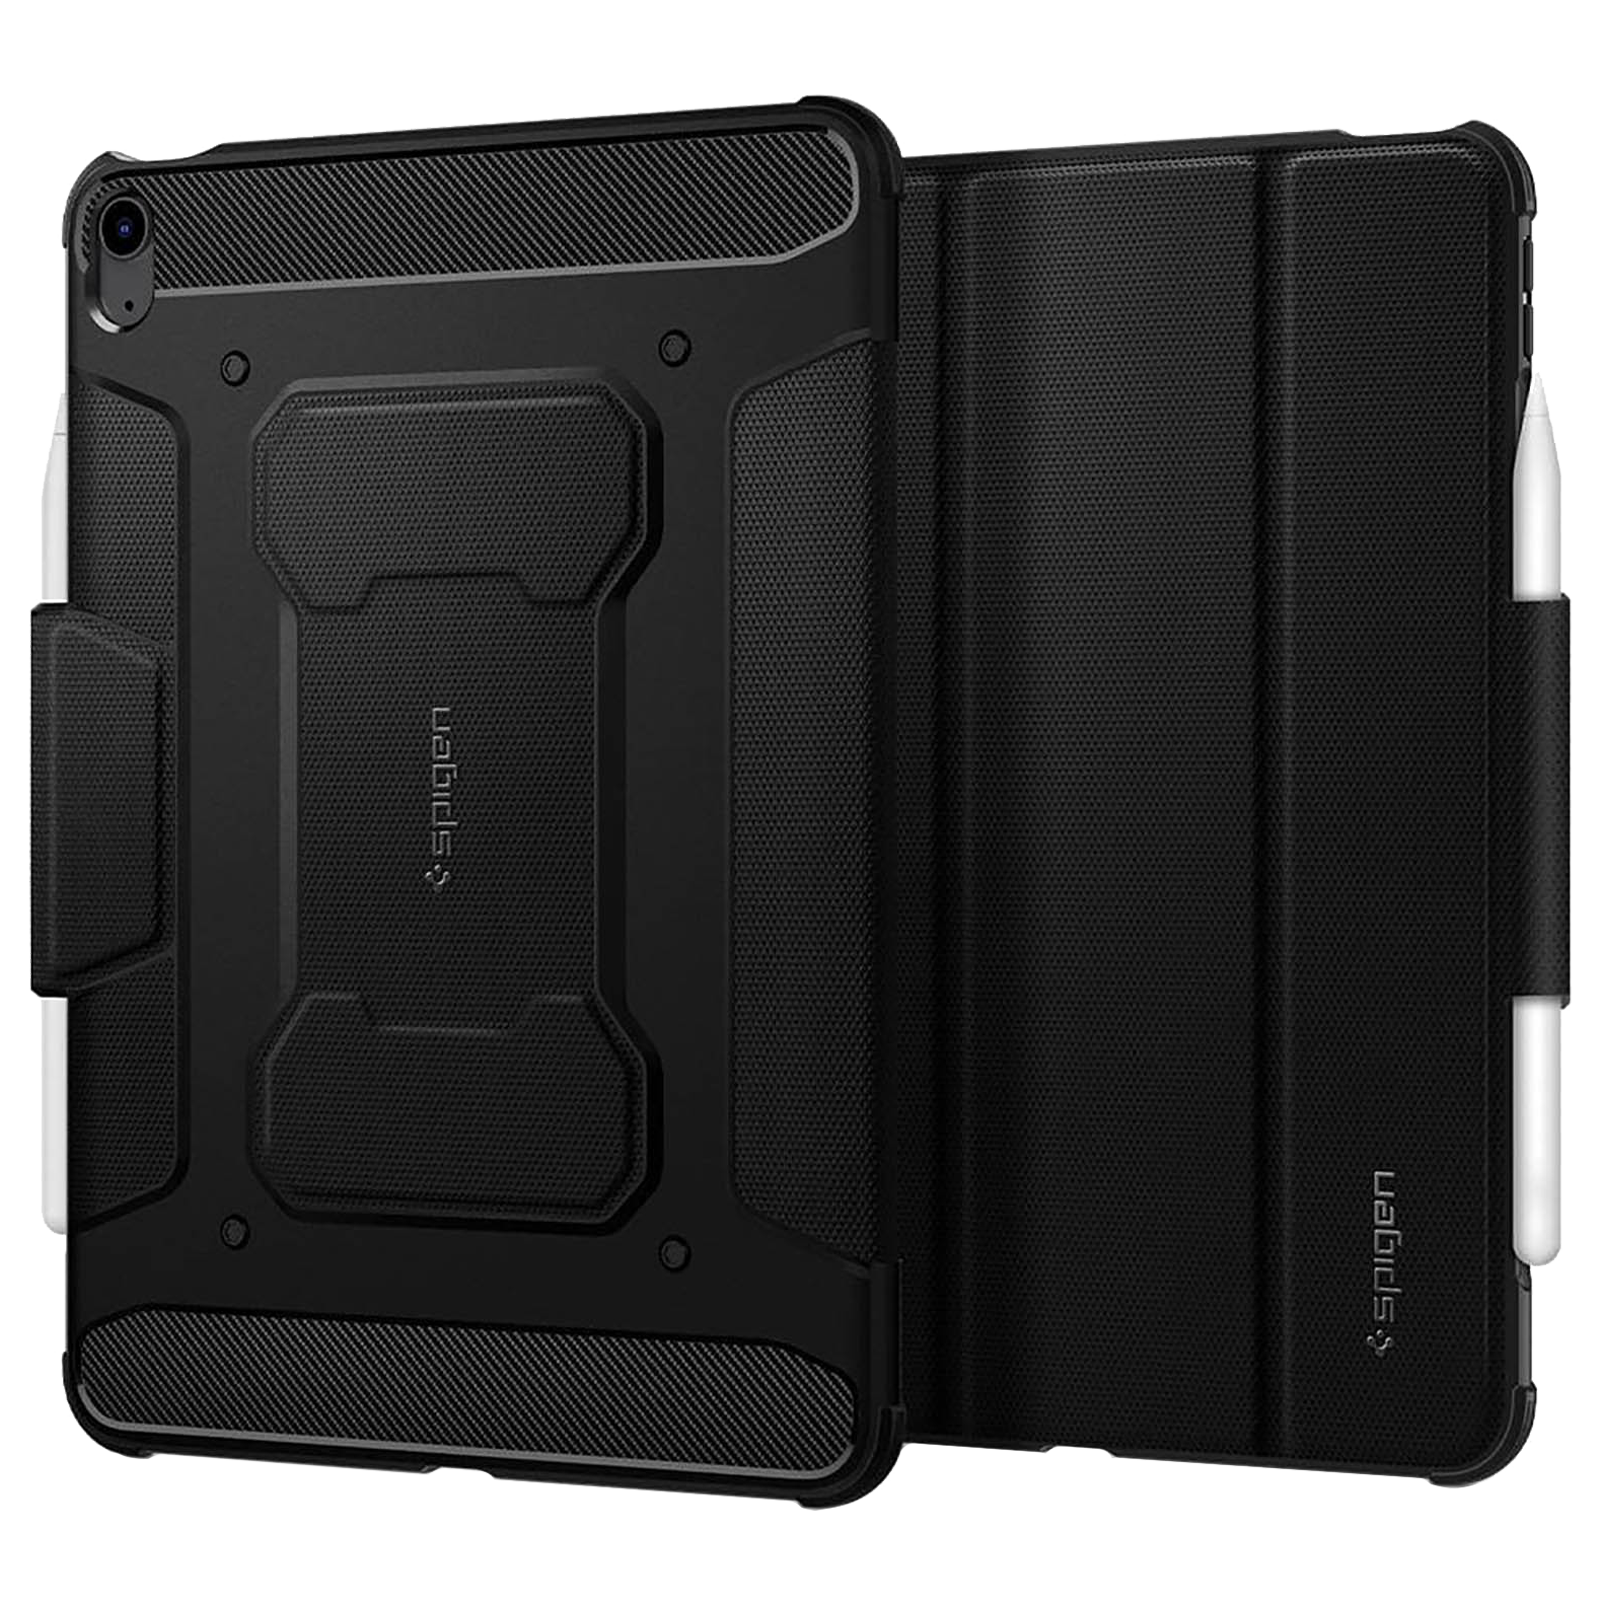 Spigen Rugged Armor Pro TPU and PC Full Cover Case For iPad Air 10.9″ (2020) (Air Cushion Technology, ACS02054, Black)